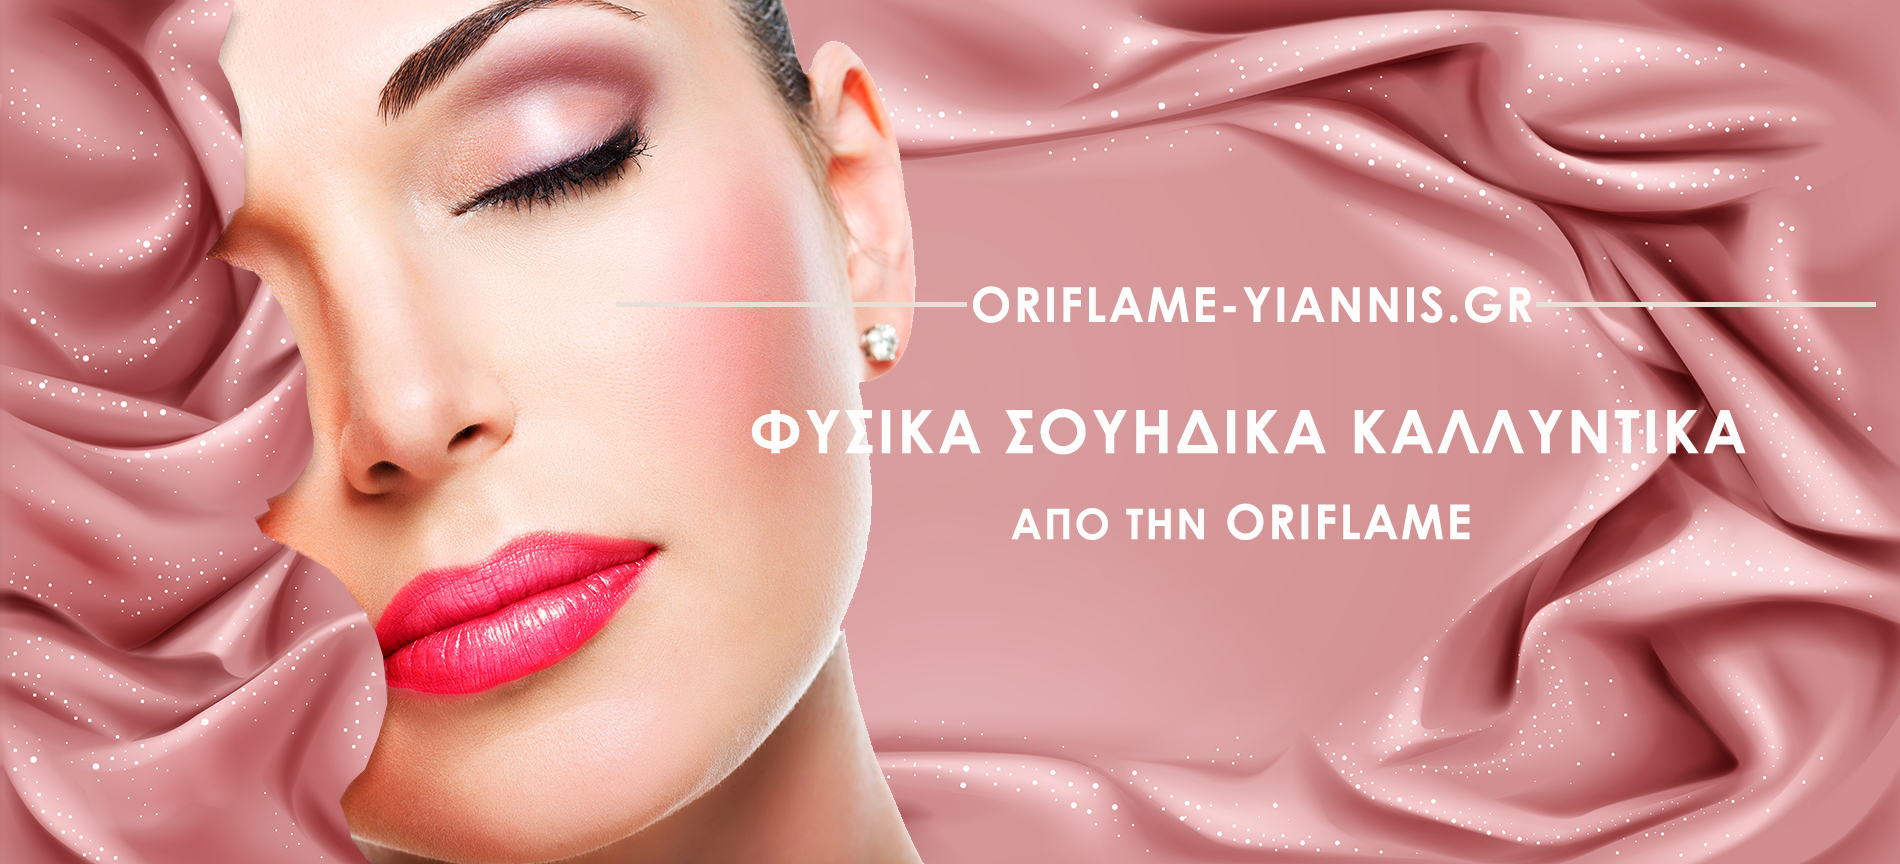 ORIFLAME YIANNIS